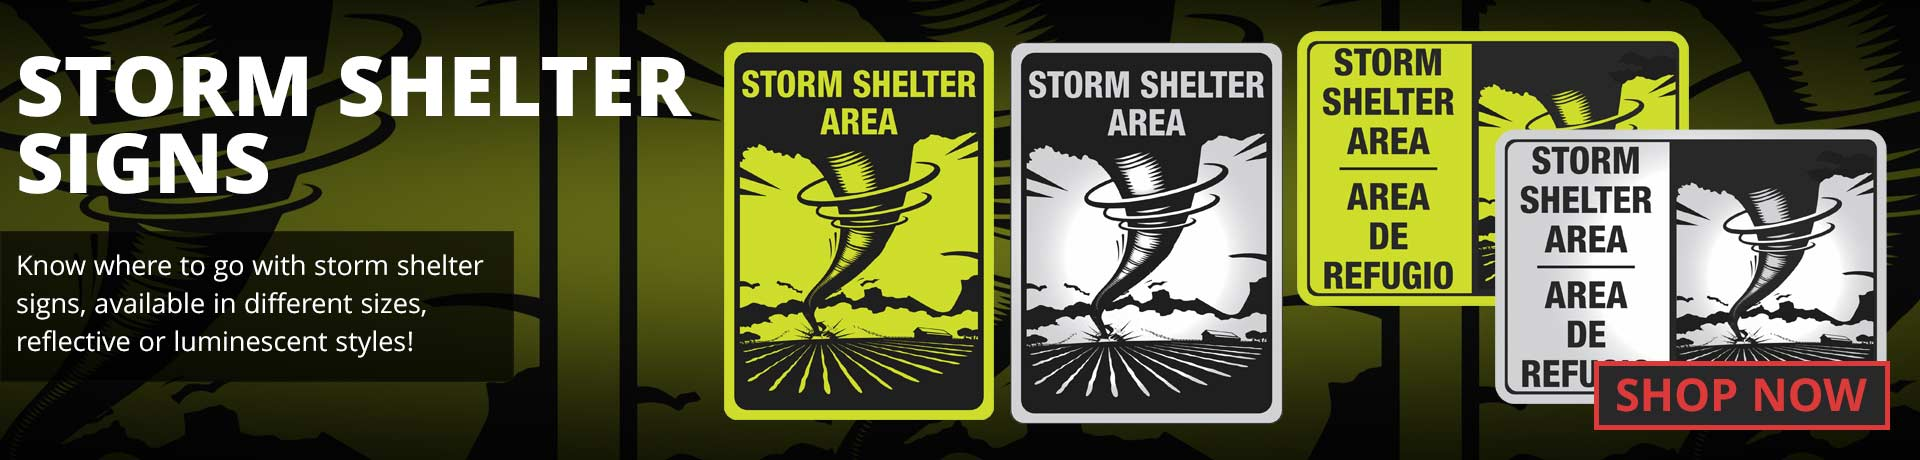 Storm Shelter Signs